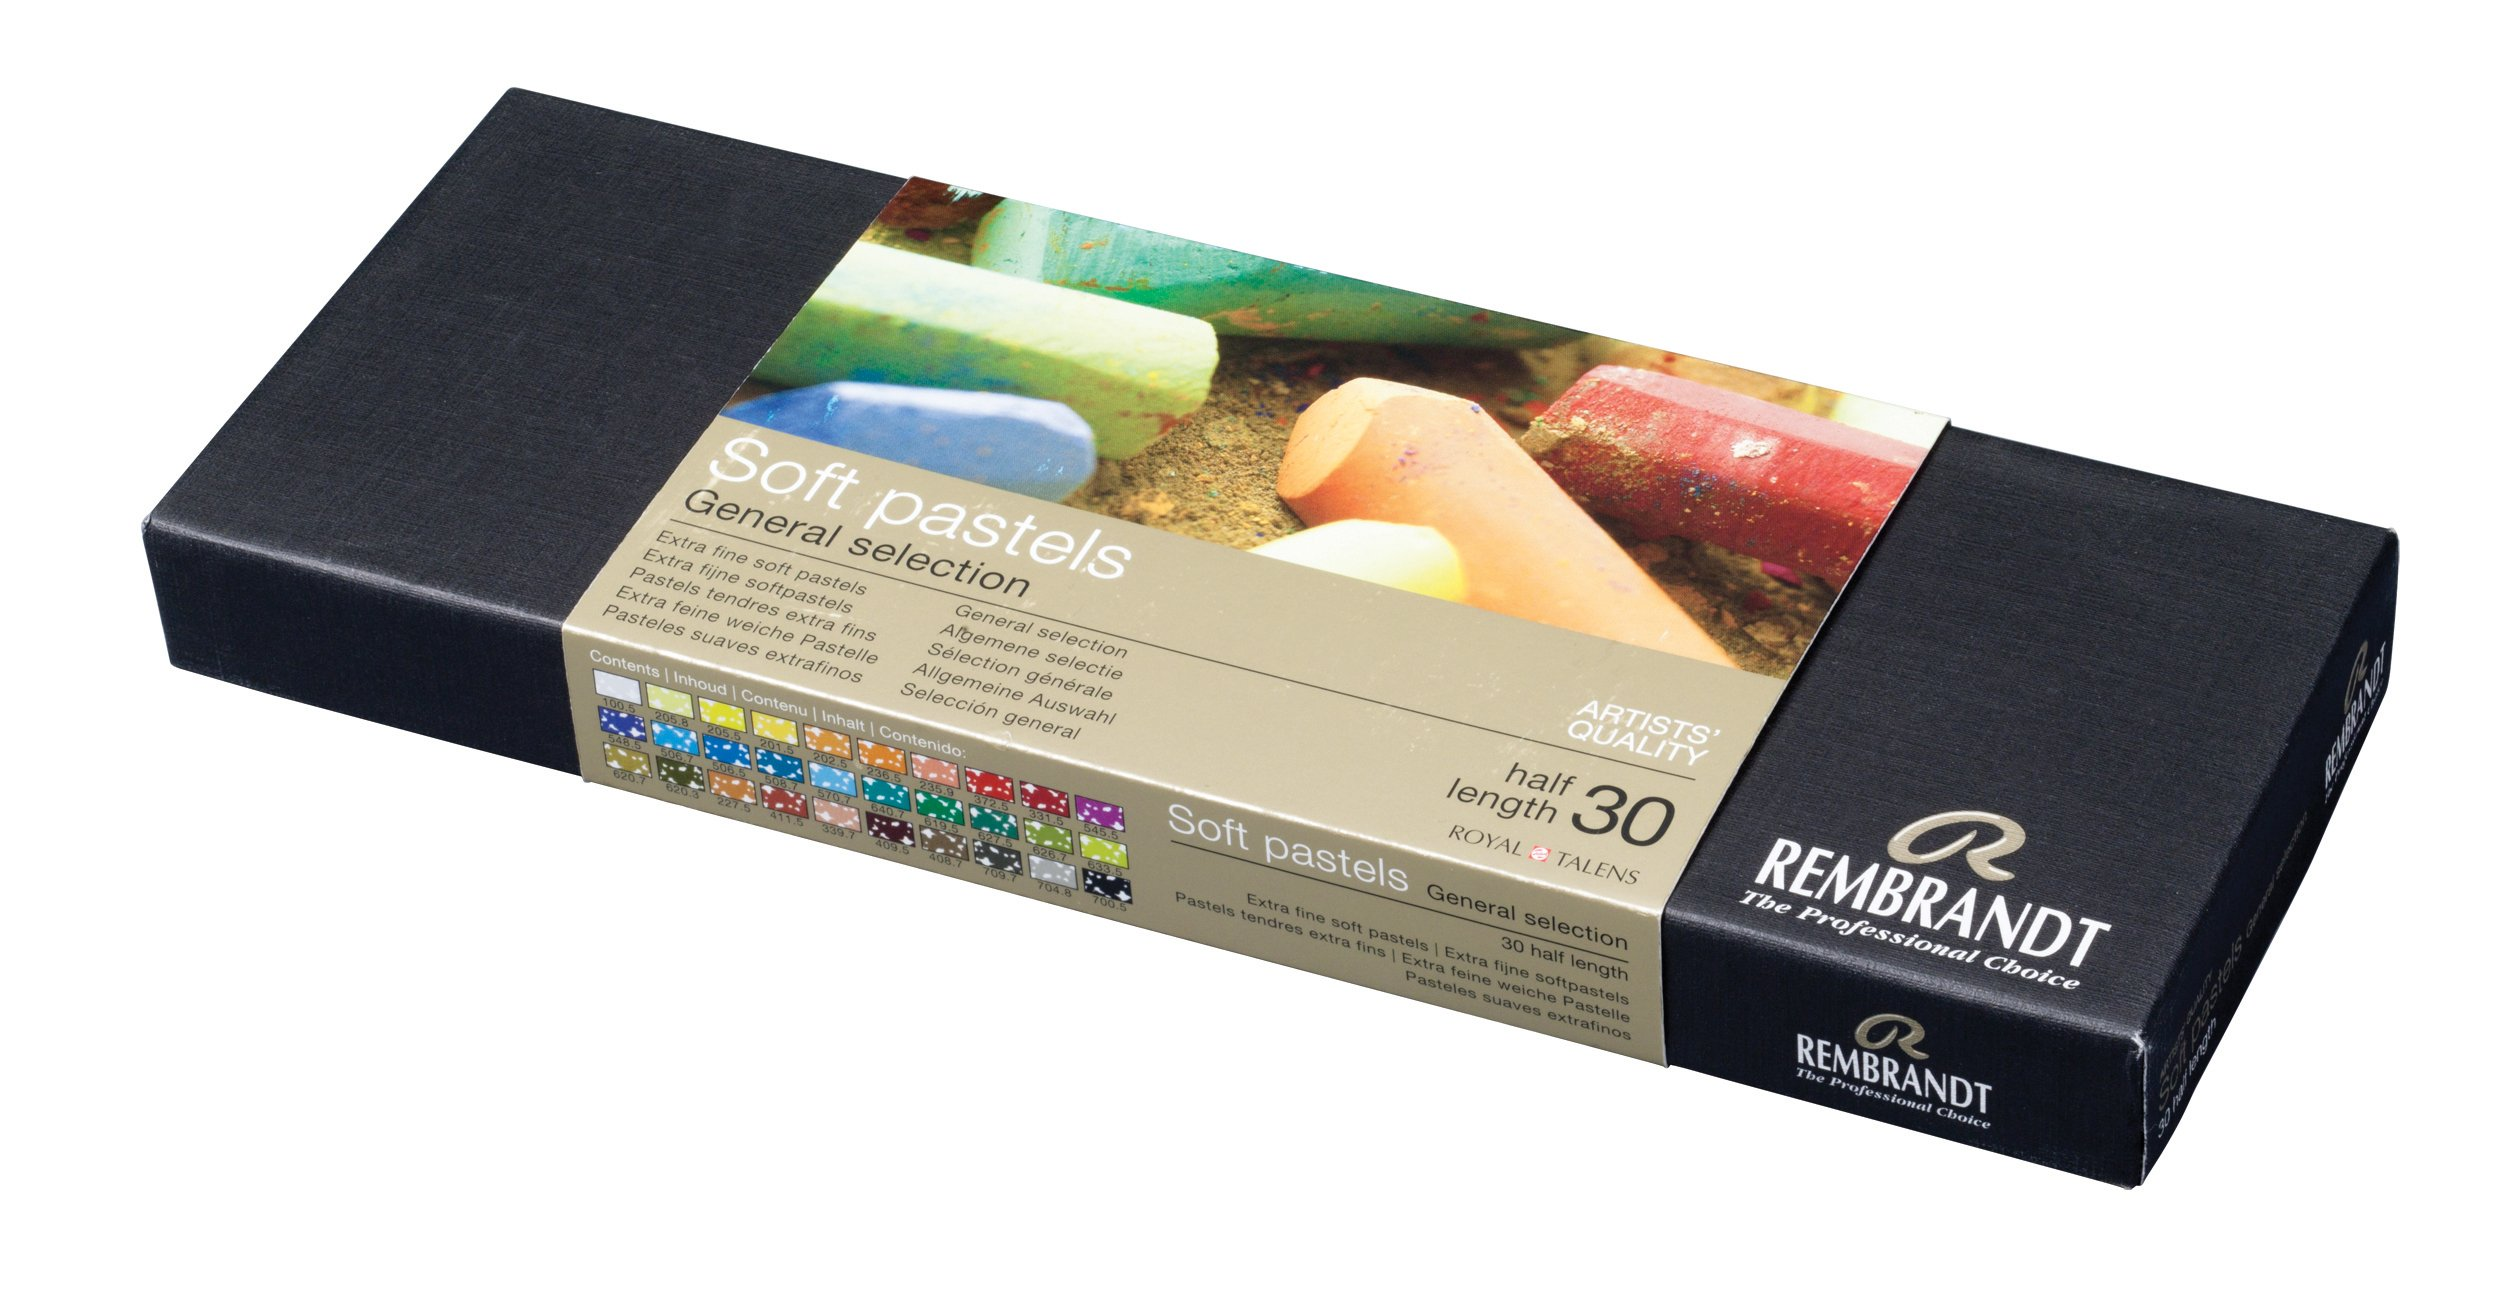 Rembrandt Soft Pastel Cardboard Box Set - 30 Half Stick General Selection - Art Supplies (Inglese) Cucina – 13 apr 2017 Royal Talens B0014ZUFQ4 100515683 Gifts